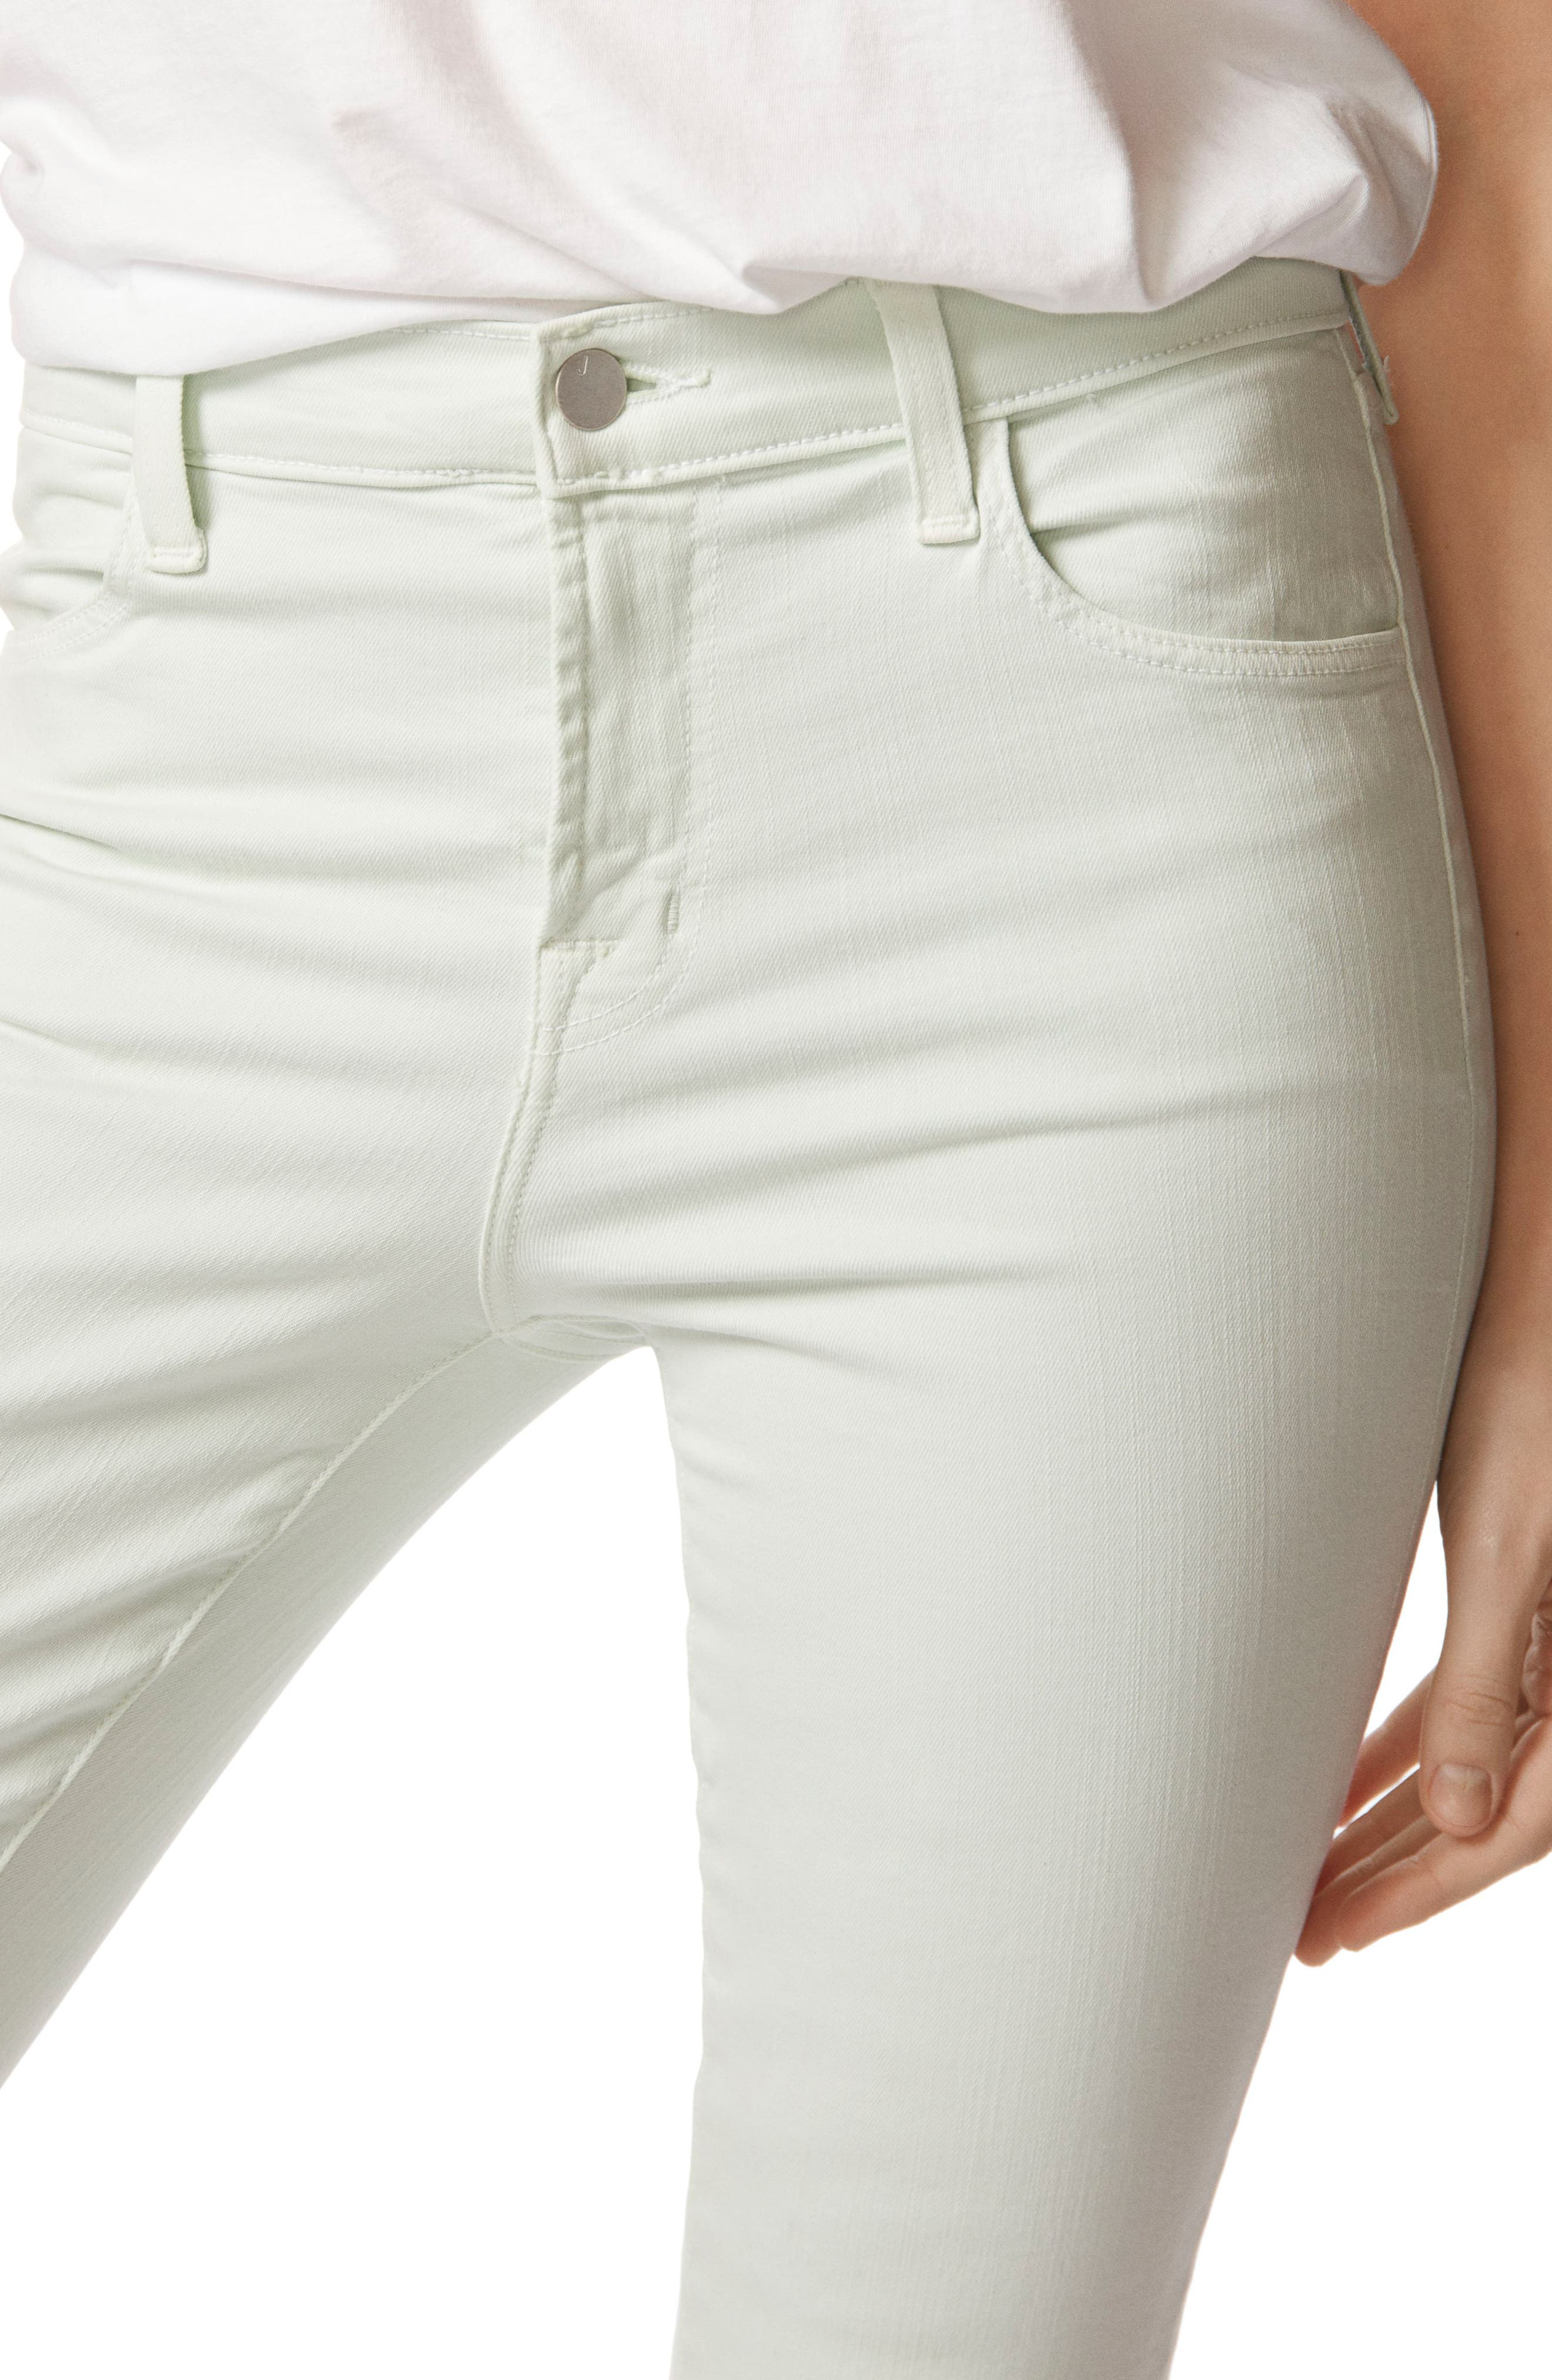 'Alana' High Rise Crop Skinny Jeans,                             Alternate thumbnail 5, color,                             336